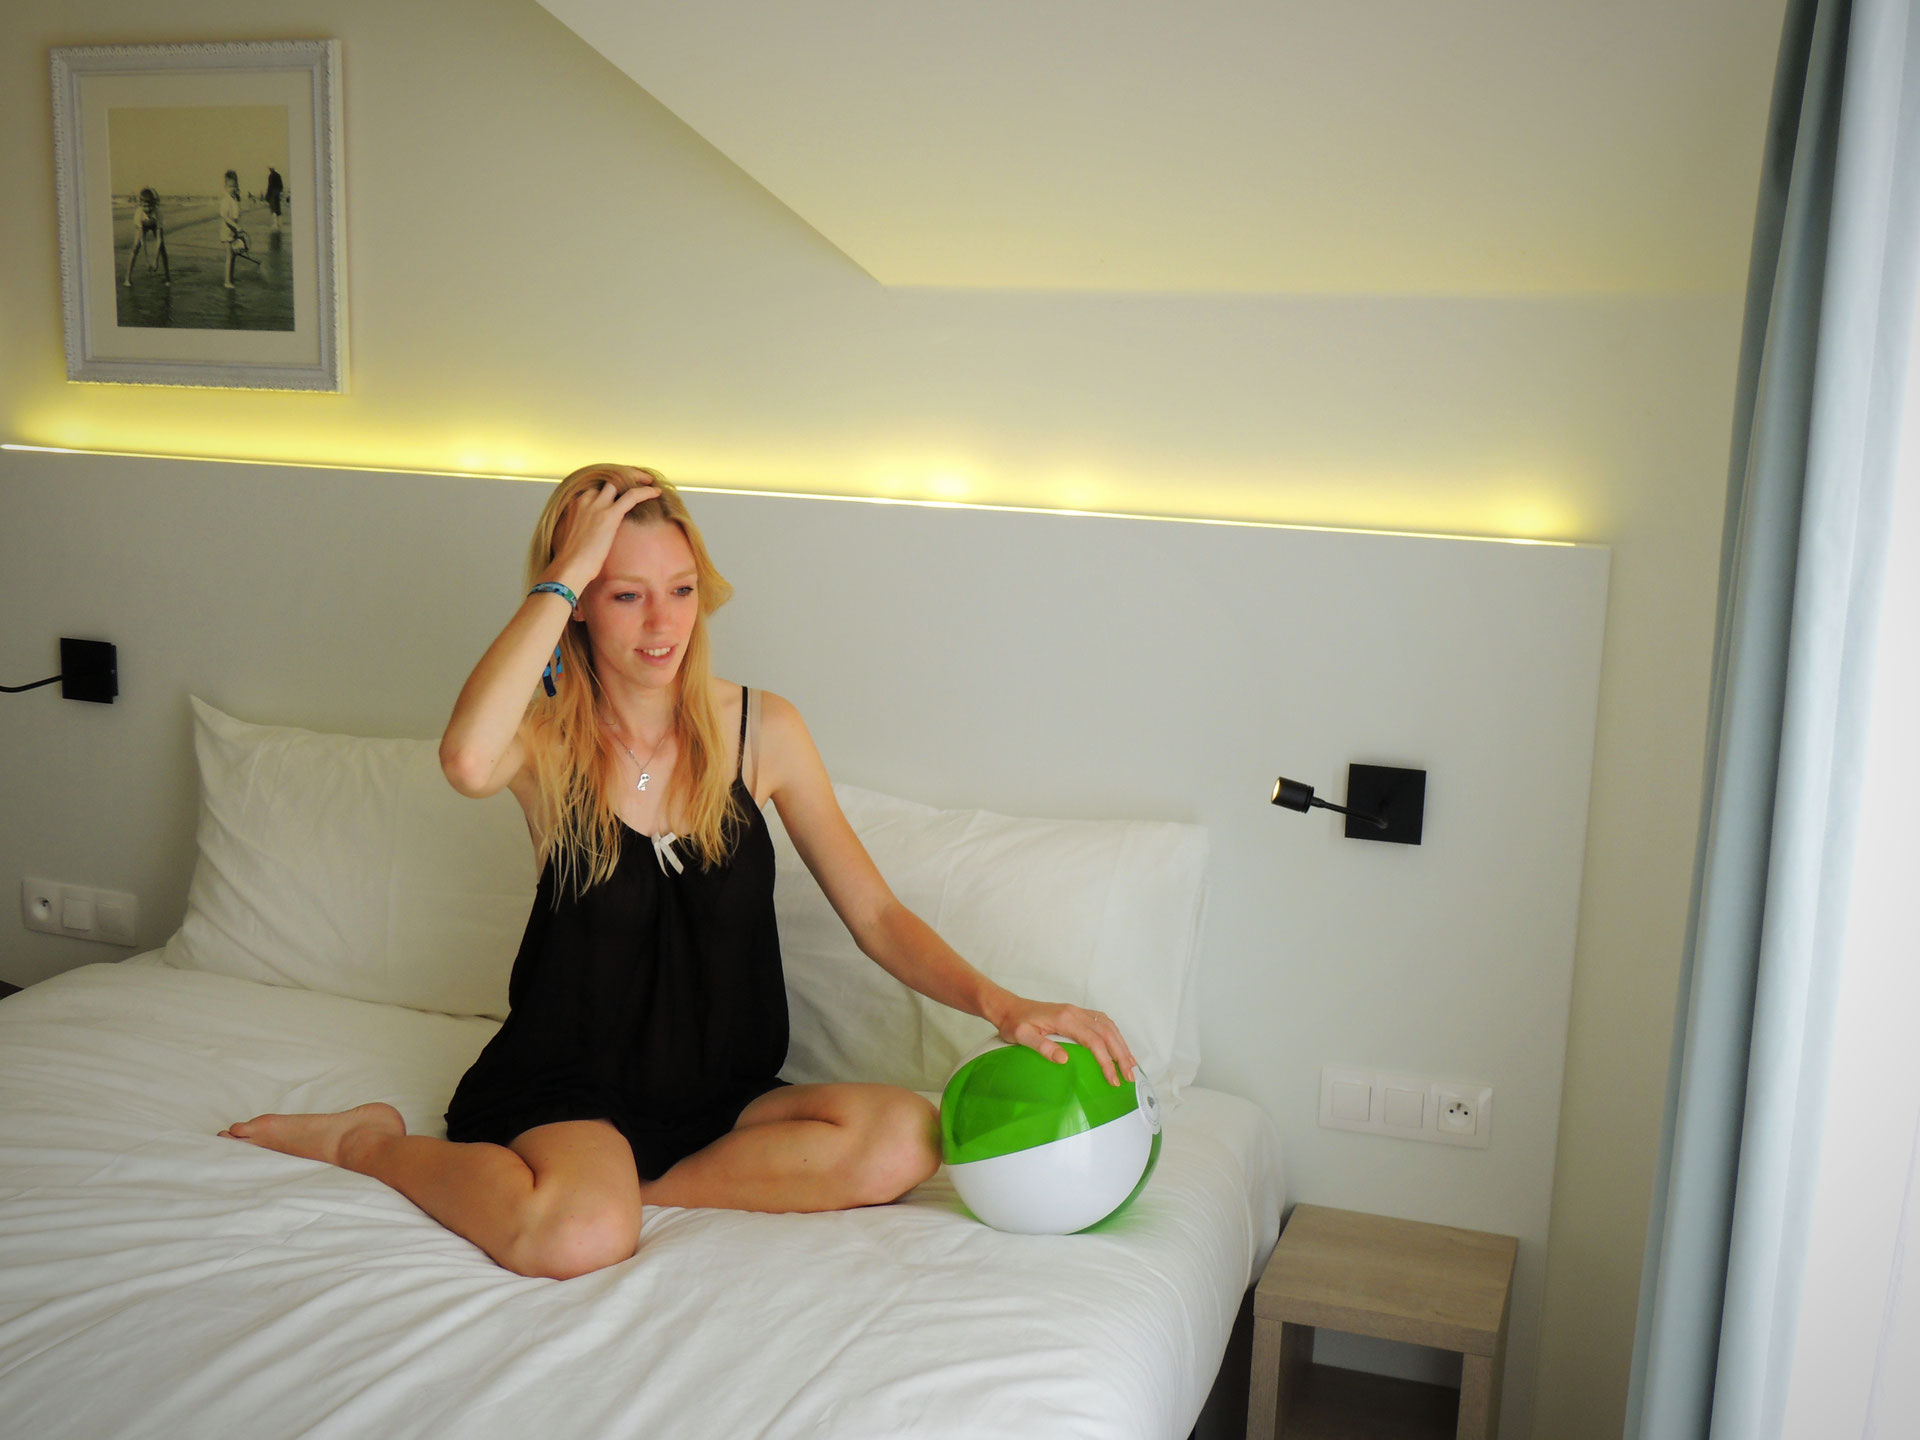 @paulina_on_the_road's cover photo for 'Hotel Review: Wake up in Style at Ibis Styles Nieuwpoort, Belgium'